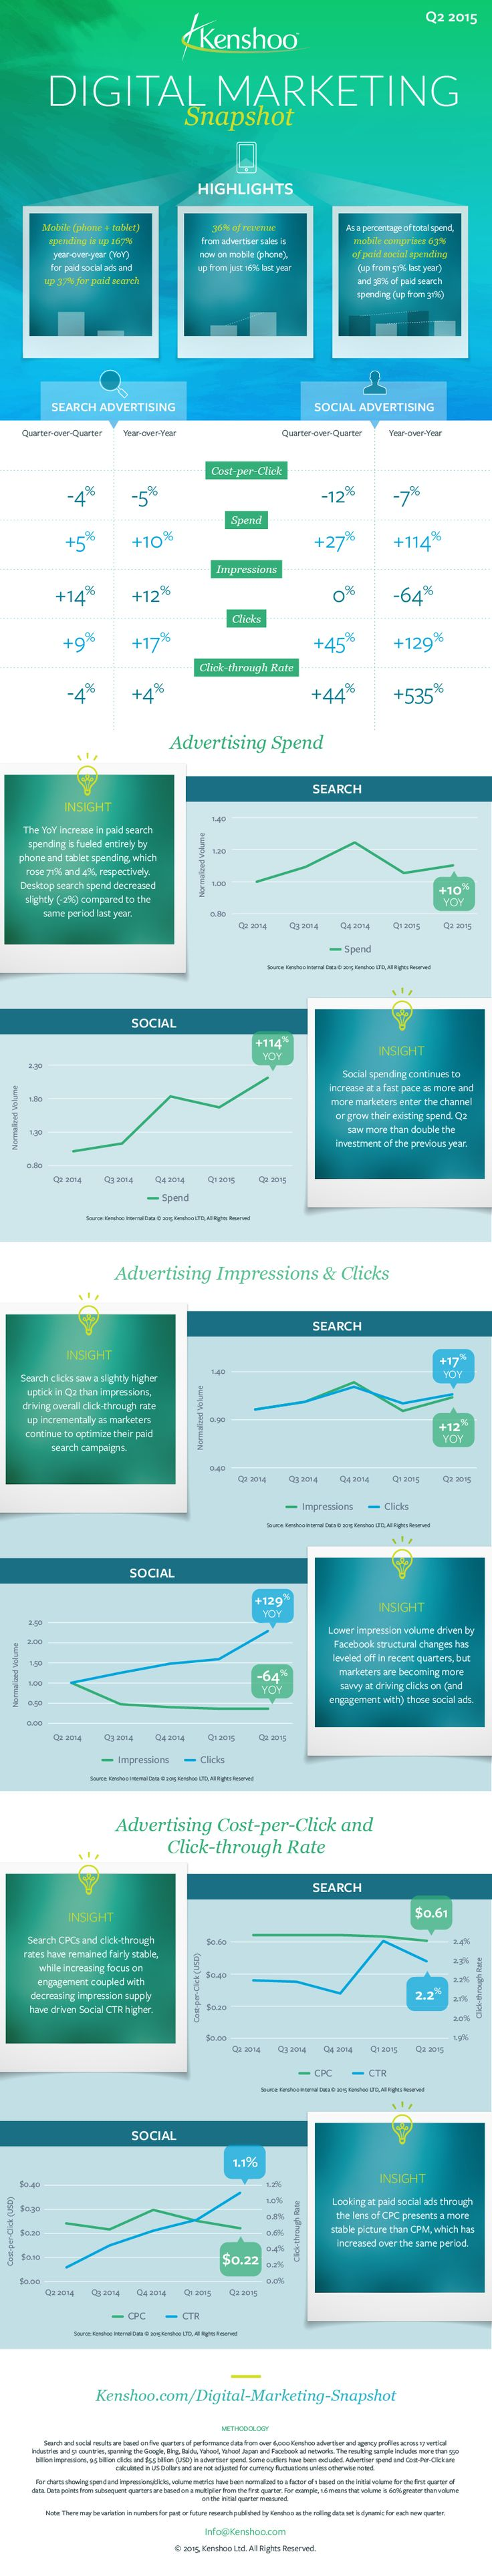 Mobile: Social Ads Leave Search Ads In The Dust [Infographic]